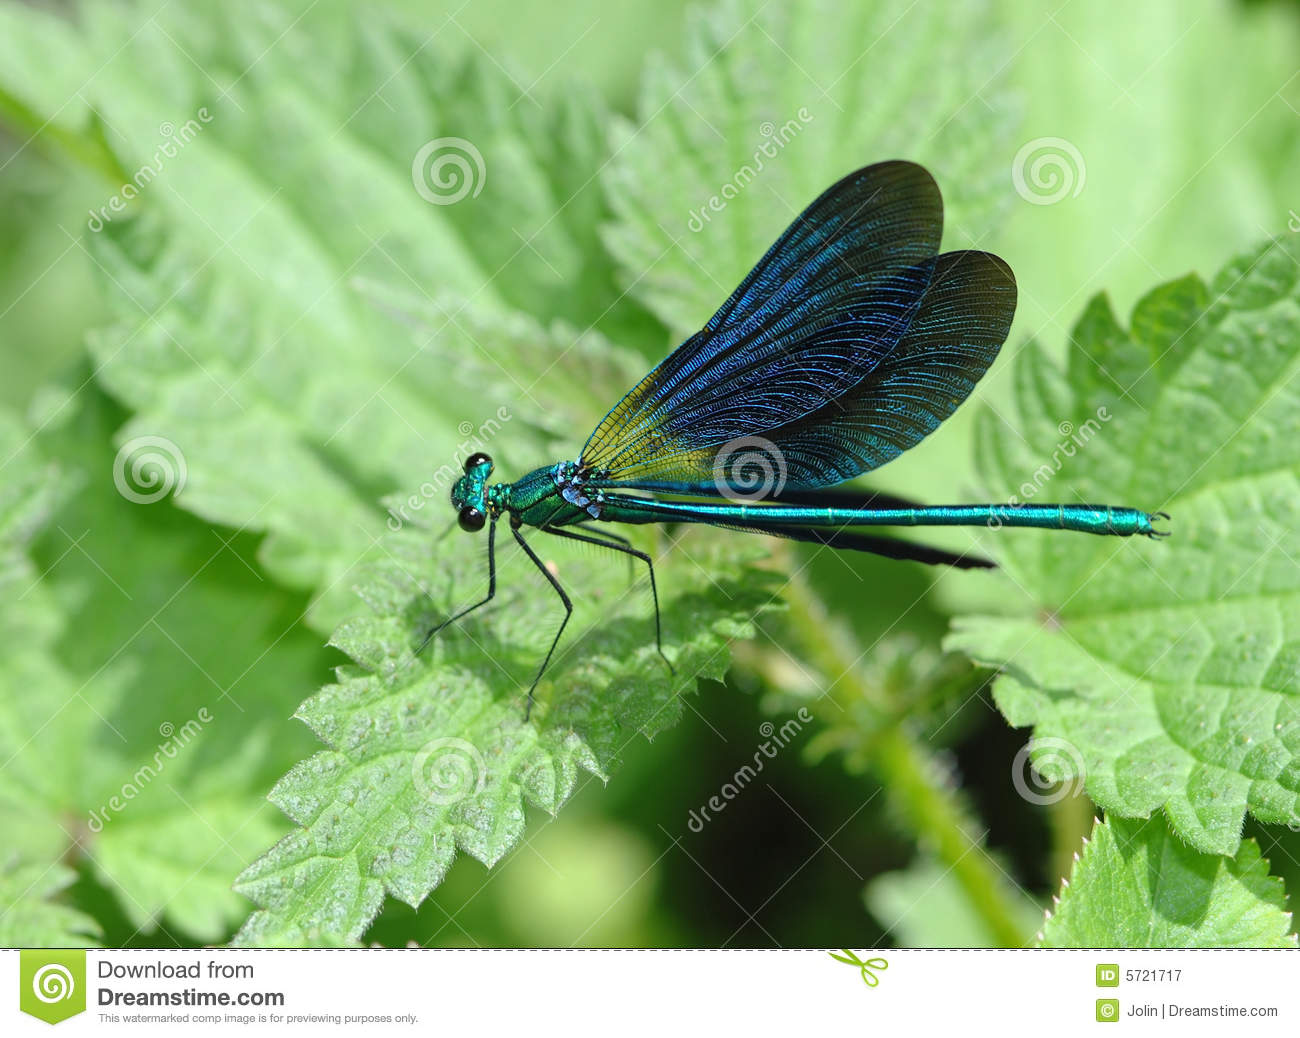 Green dragonfly pictures - photo#27